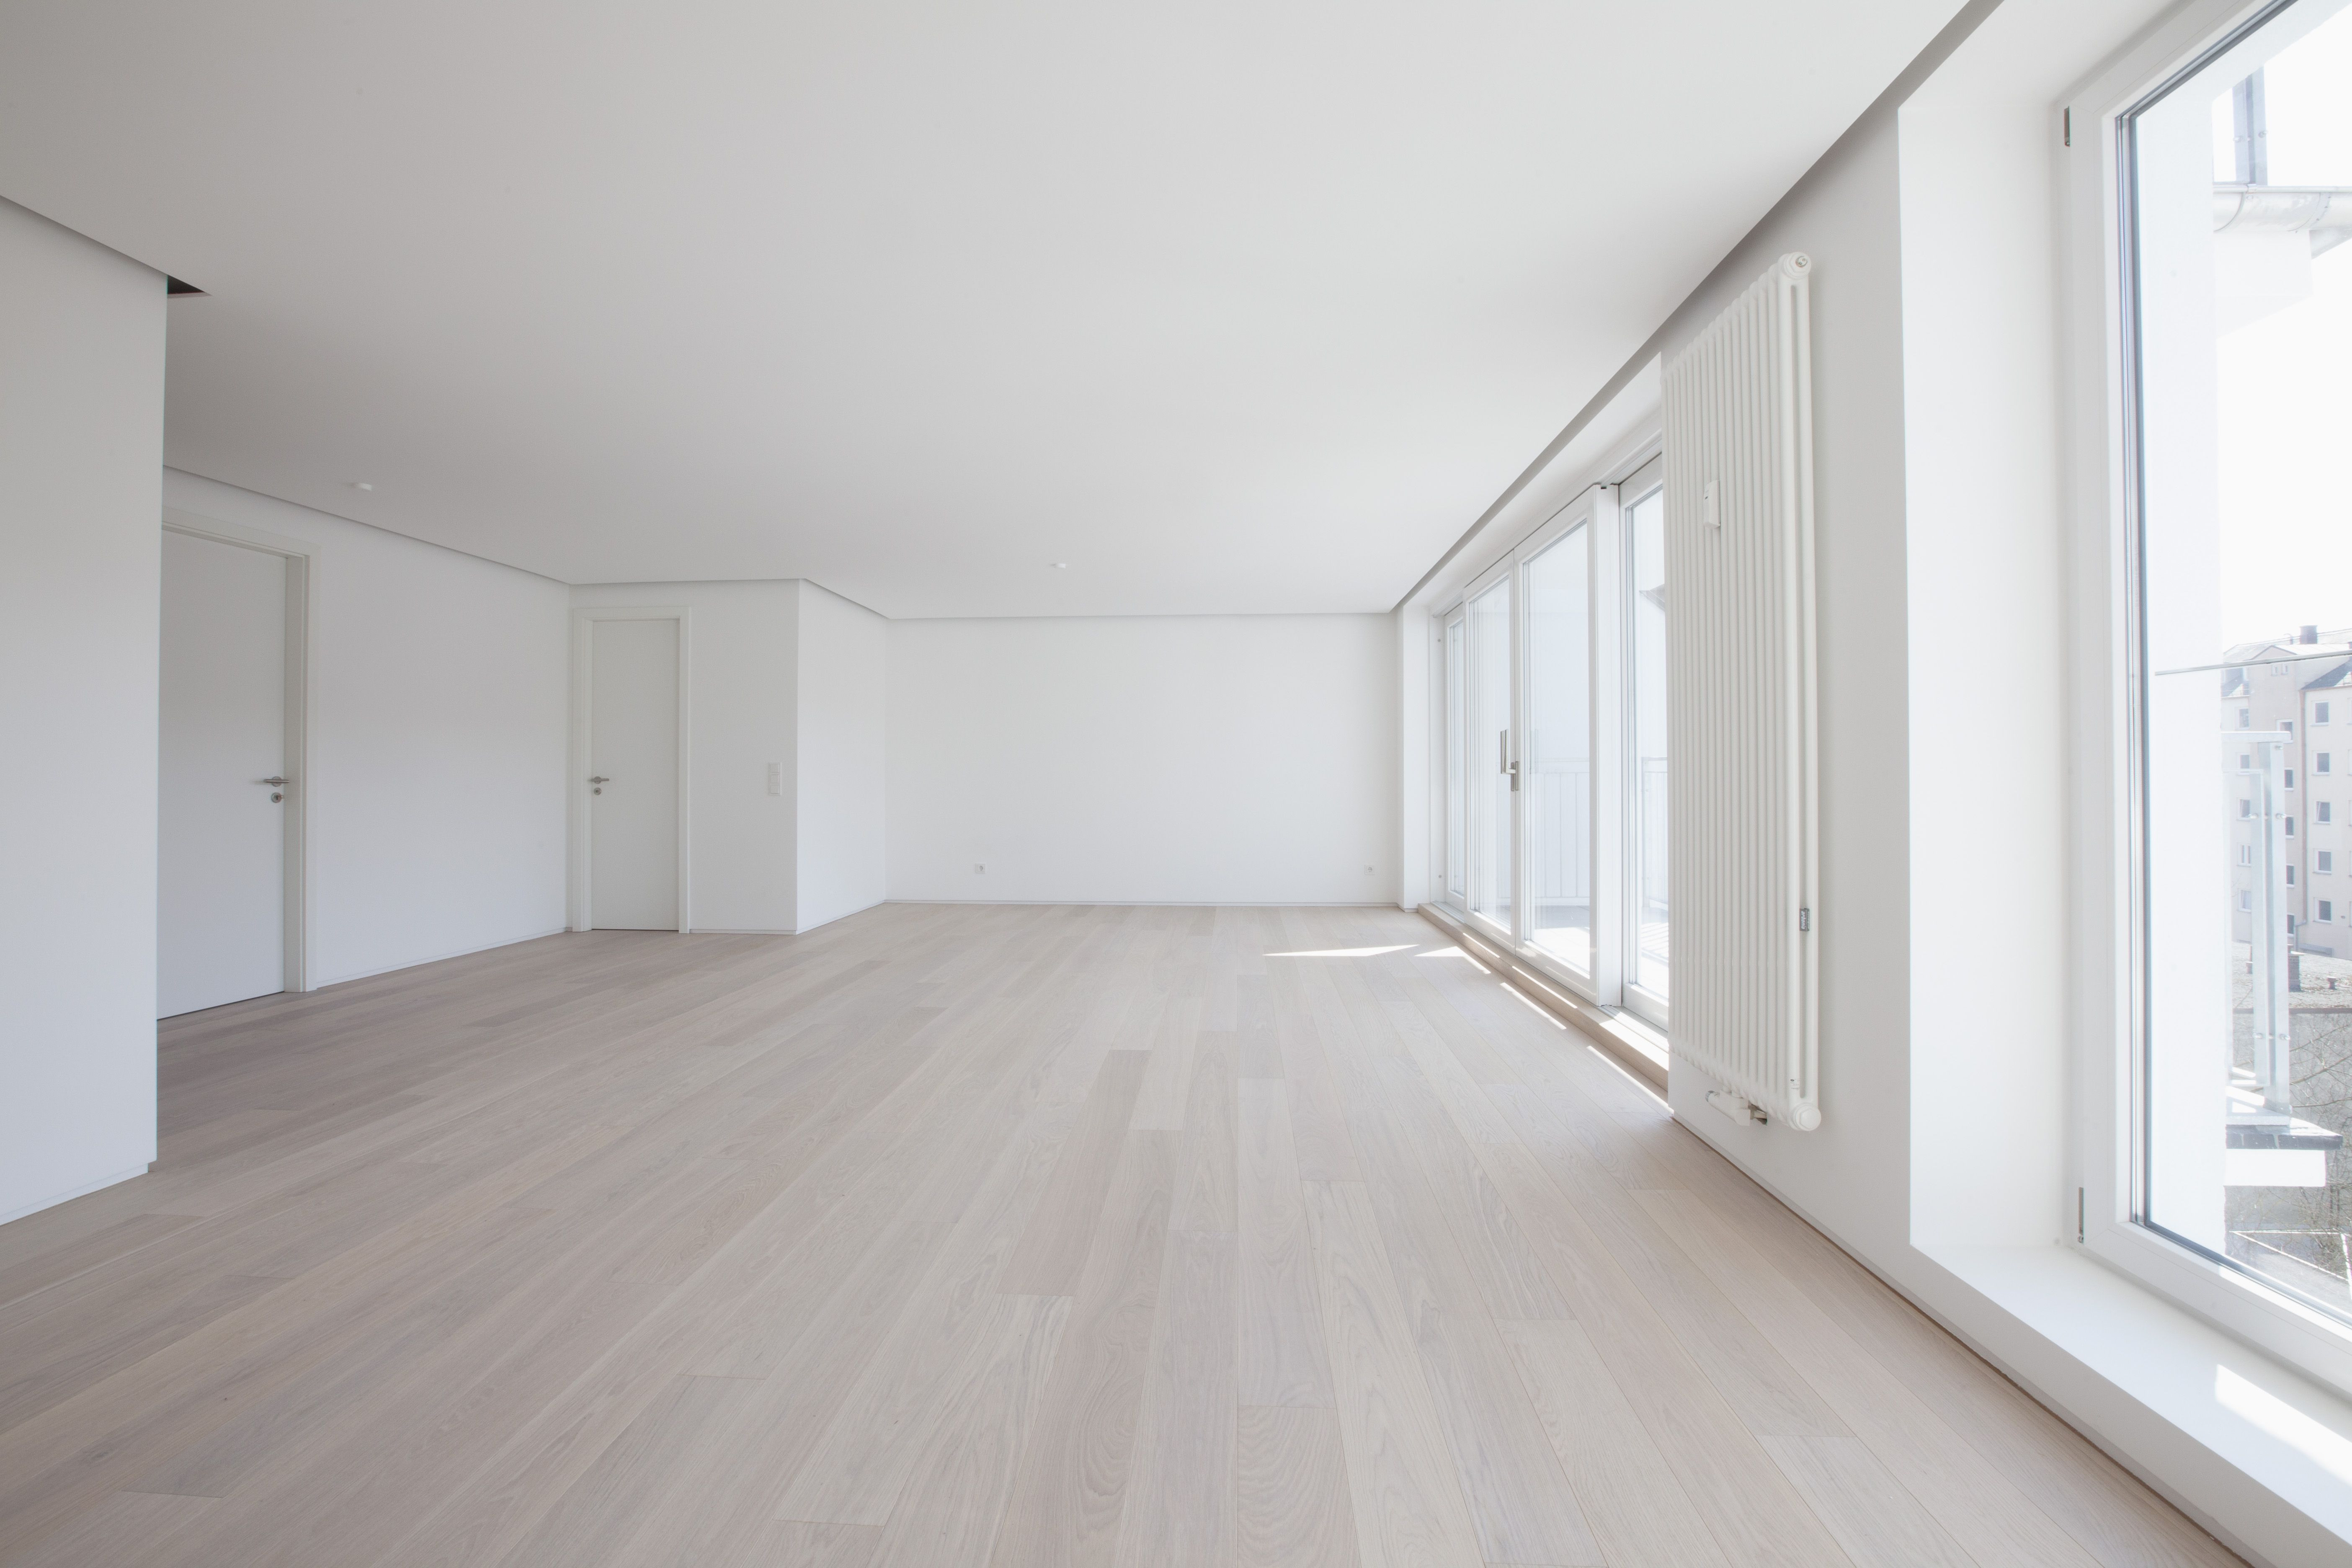 how to install engineered hardwood floors on concrete of basics of favorite hybrid engineered wood floors within empty living room in modern apartment 578189139 58866f903df78c2ccdecab05